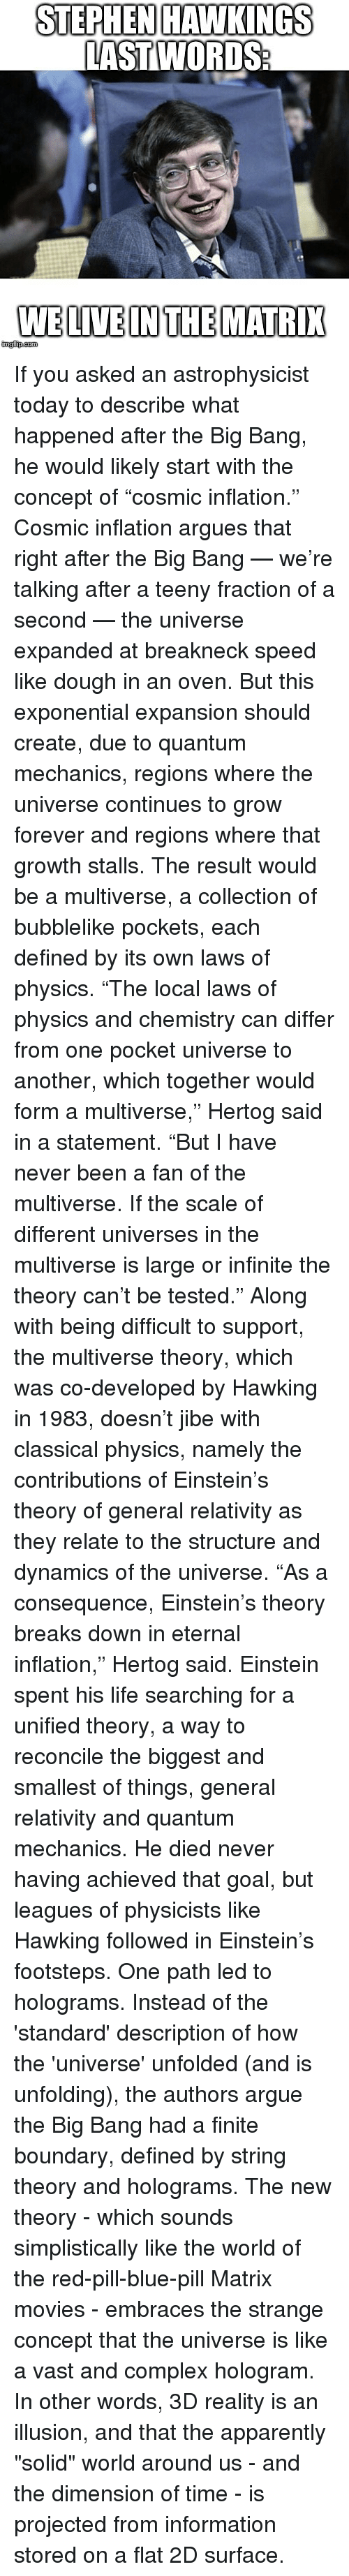 """Apparently, Arguing, and Complex: STEPHEN HAWKINGS  LAST WORDS  WELIVEINTHEMATRI If you asked an astrophysicist today to describe what happened after the Big Bang, he would likely start with the concept of """"cosmic inflation."""" Cosmic inflation argues that right after the Big Bang — we're talking after a teeny fraction of a second — the universe expanded at breakneck speed like dough in an oven. But this exponential expansion should create, due to quantum mechanics, regions where the universe continues to grow forever and regions where that growth stalls. The result would be a multiverse, a collection of bubblelike pockets, each defined by its own laws of physics. """"The local laws of physics and chemistry can differ from one pocket universe to another, which together would form a multiverse,"""" Hertog said in a statement. """"But I have never been a fan of the multiverse. If the scale of different universes in the multiverse is large or infinite the theory can't be tested."""" Along with being difficult to support, the multiverse theory, which was co-developed by Hawking in 1983, doesn't jibe with classical physics, namely the contributions of Einstein's theory of general relativity as they relate to the structure and dynamics of the universe. """"As a consequence, Einstein's theory breaks down in eternal inflation,"""" Hertog said. Einstein spent his life searching for a unified theory, a way to reconcile the biggest and smallest of things, general relativity and quantum mechanics. He died never having achieved that goal, but leagues of physicists like Hawking followed in Einstein's footsteps. One path led to holograms. Instead of the 'standard' description of how the 'universe' unfolded (and is unfolding), the authors argue the Big Bang had a finite boundary, defined by string theory and holograms. The new theory - which sounds simplistically like the world of the red-pill-blue-pill Matrix movies - embraces the strange concept that the universe is like a vast and complex hologram."""